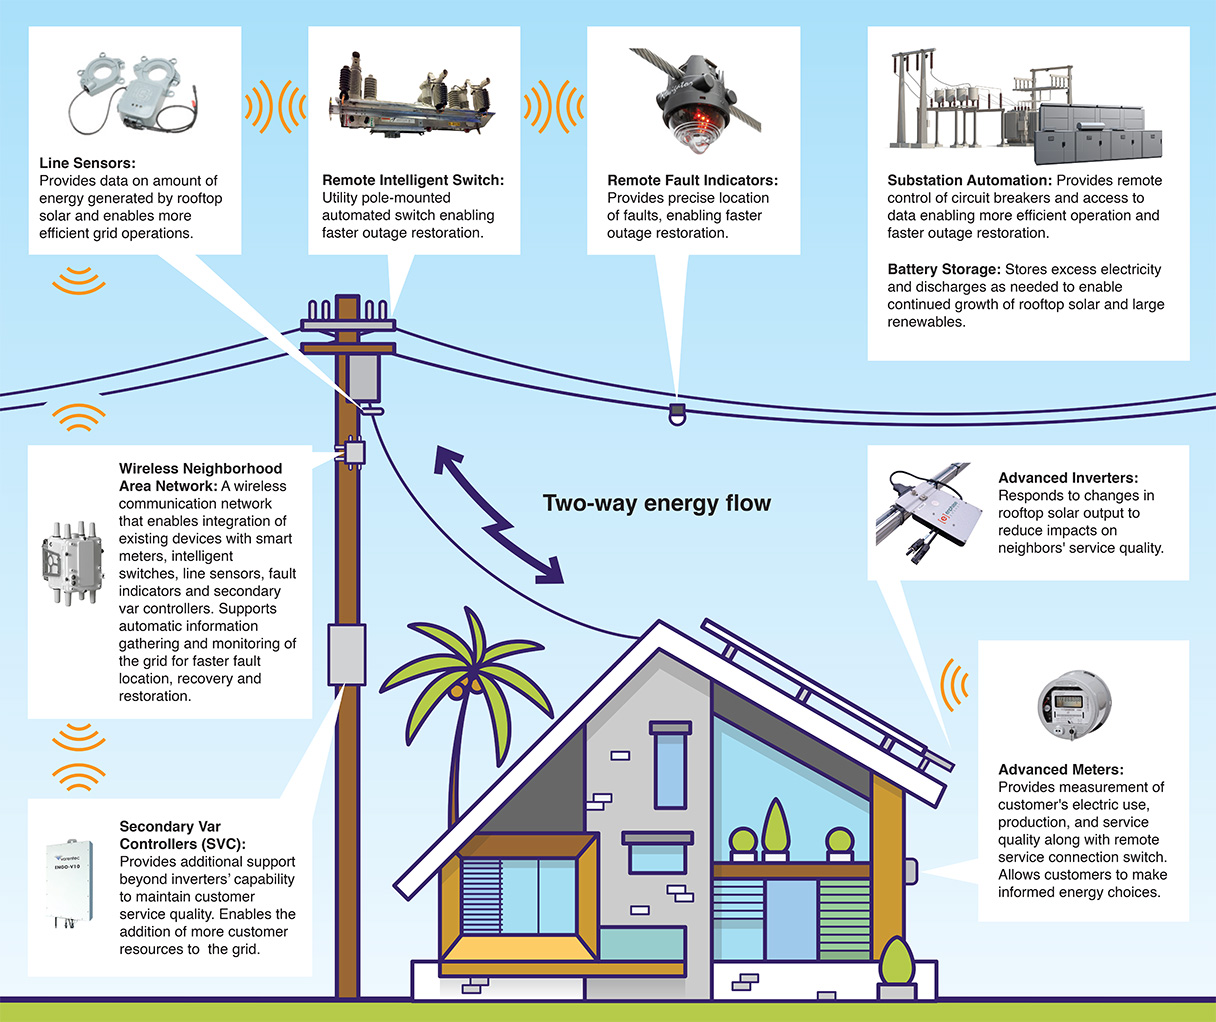 Grid Modernization Technologies Hawaiian Electric How To Make A State Diagram Future Of